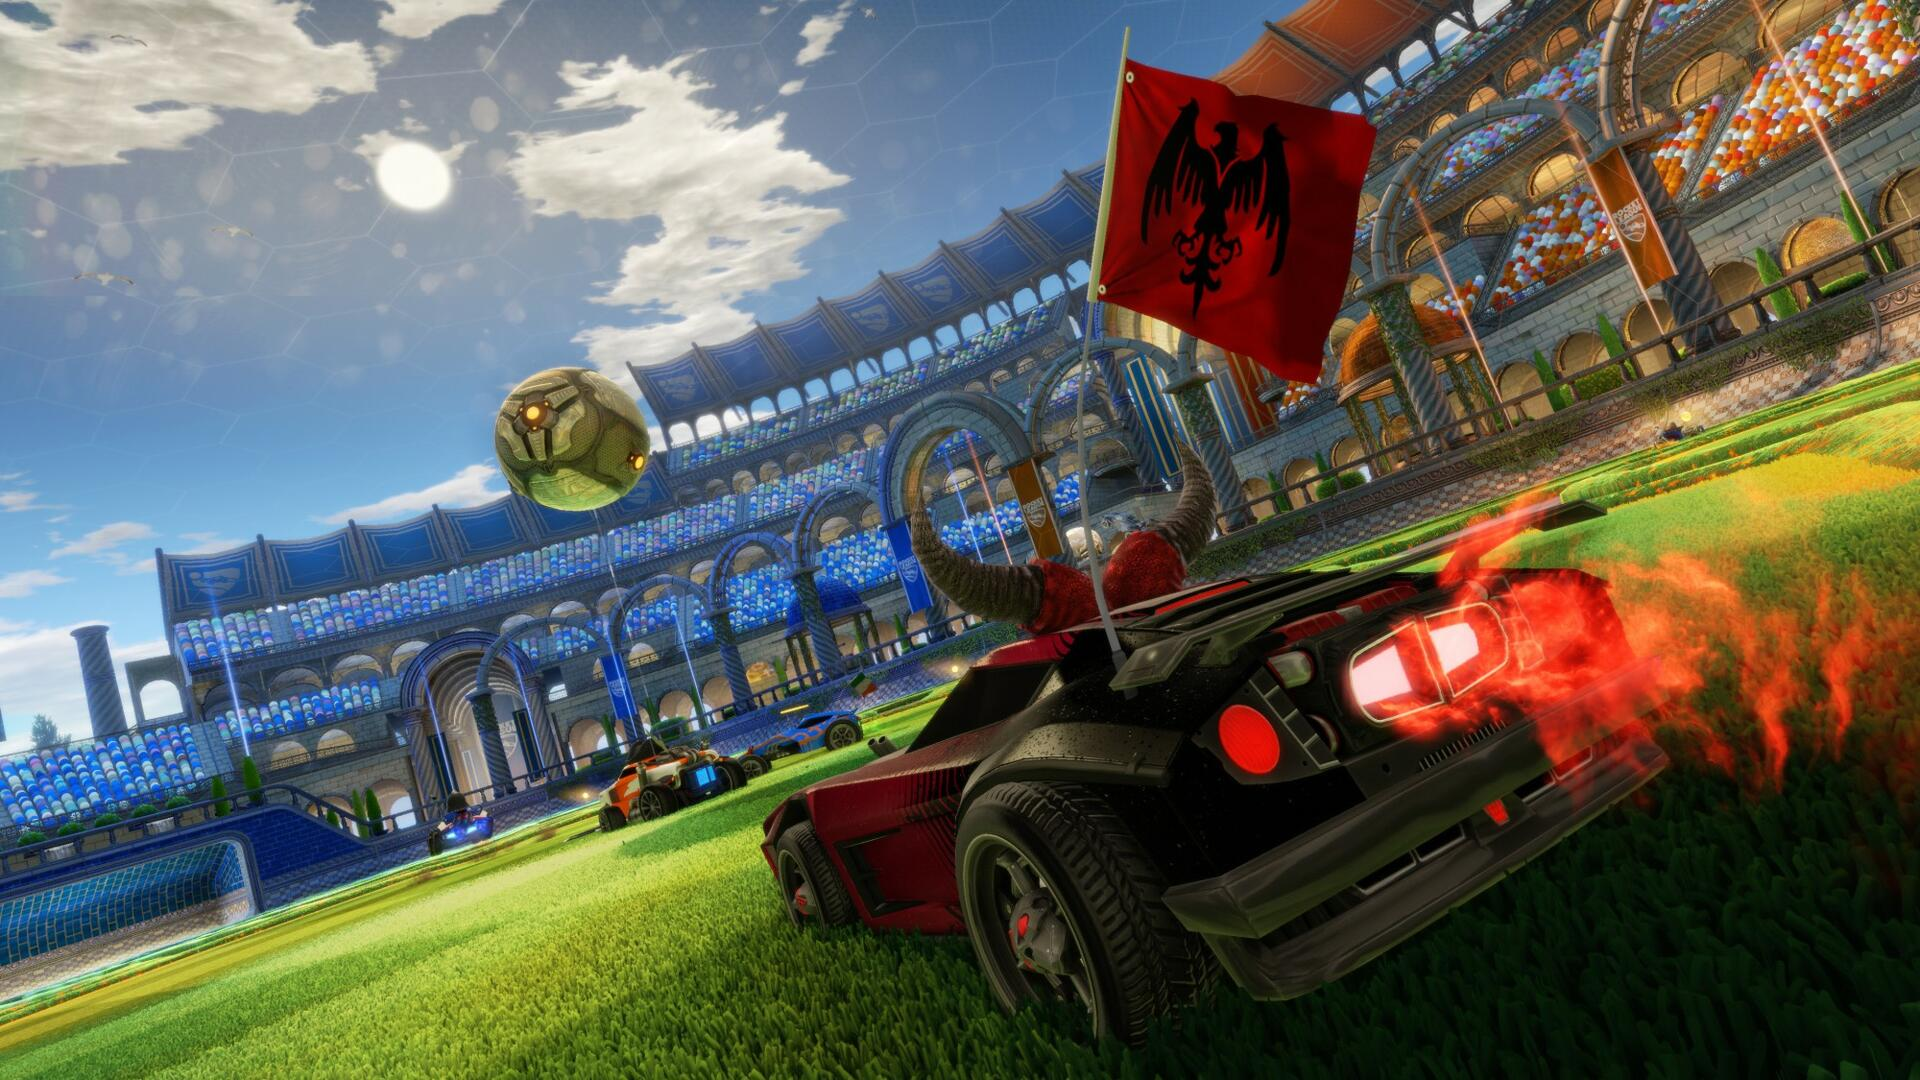 Rocket League's Fortnite Style Game Pass is Coming Next Week